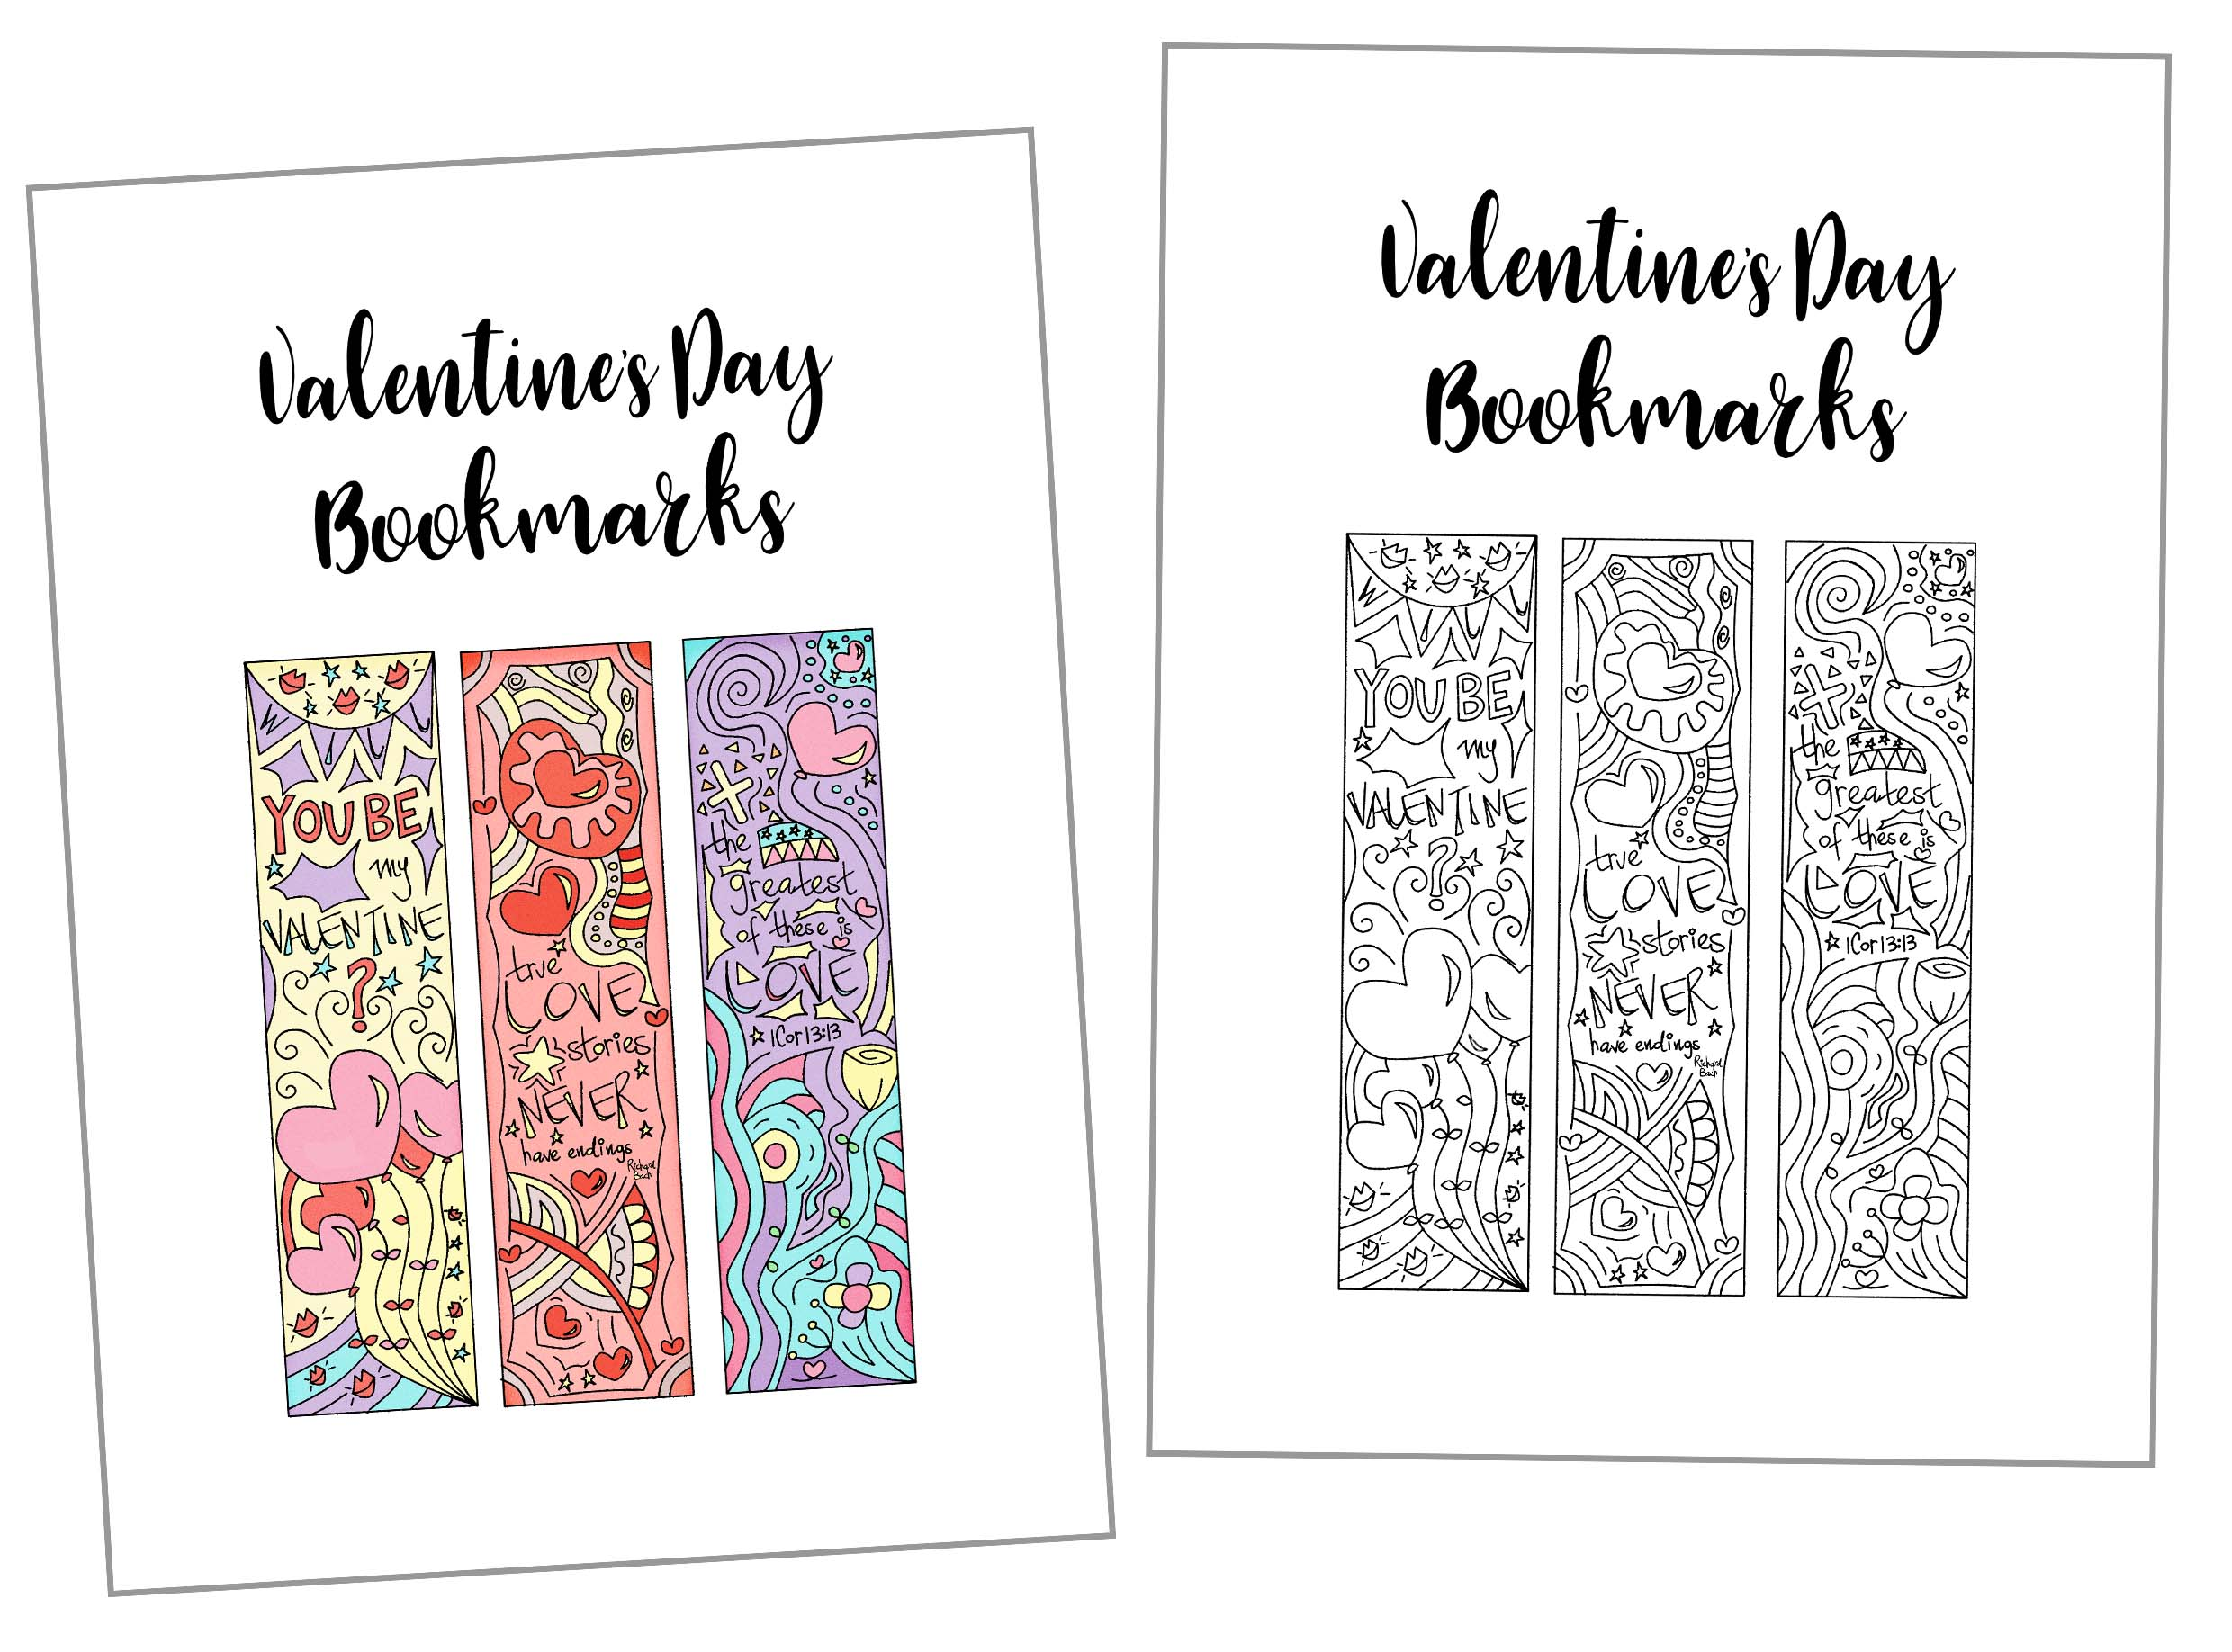 picture about Cute Bookmarks Printable identified as Coloring Valentines Working day Bookmarks Totally free Printable